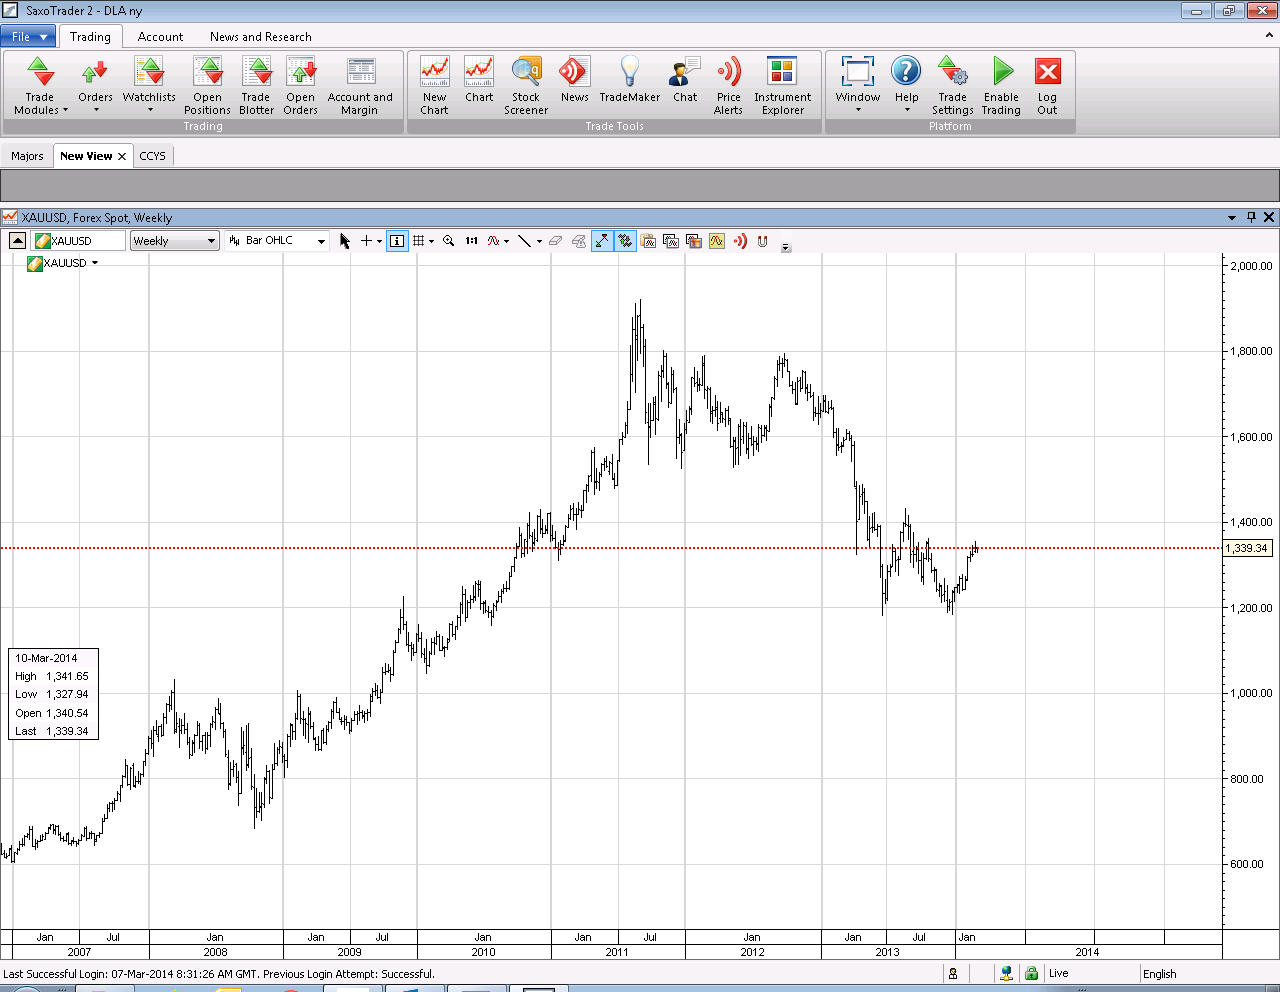 Outlook: XAUUSD Possible way to play the current senario. Buy spot?